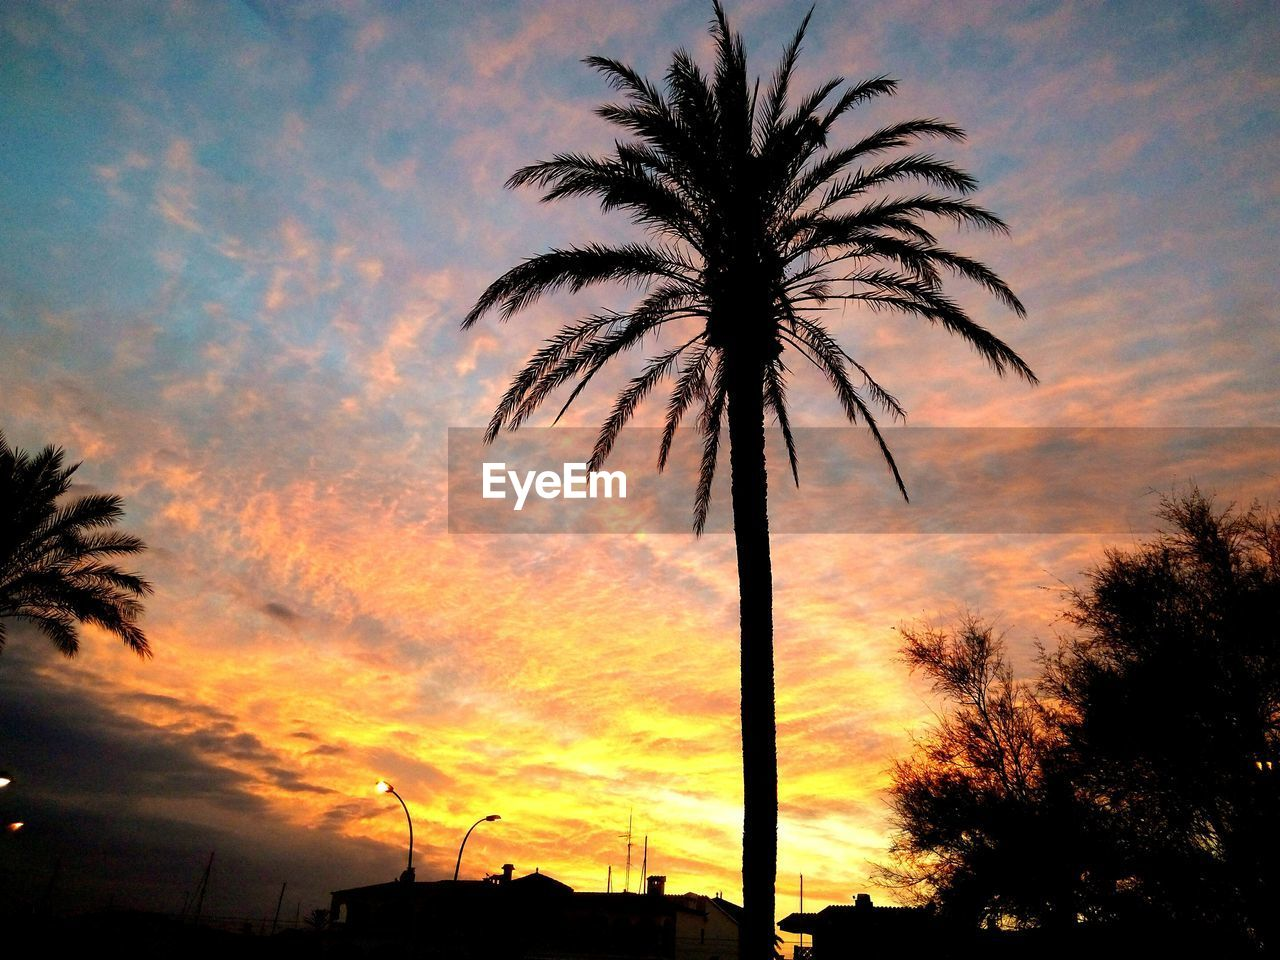 silhouette, sky, sunset, tree, palm tree, tropical climate, cloud - sky, orange color, plant, scenics - nature, beauty in nature, nature, low angle view, no people, tranquility, tranquil scene, outdoors, environment, growth, idyllic, palm leaf, romantic sky